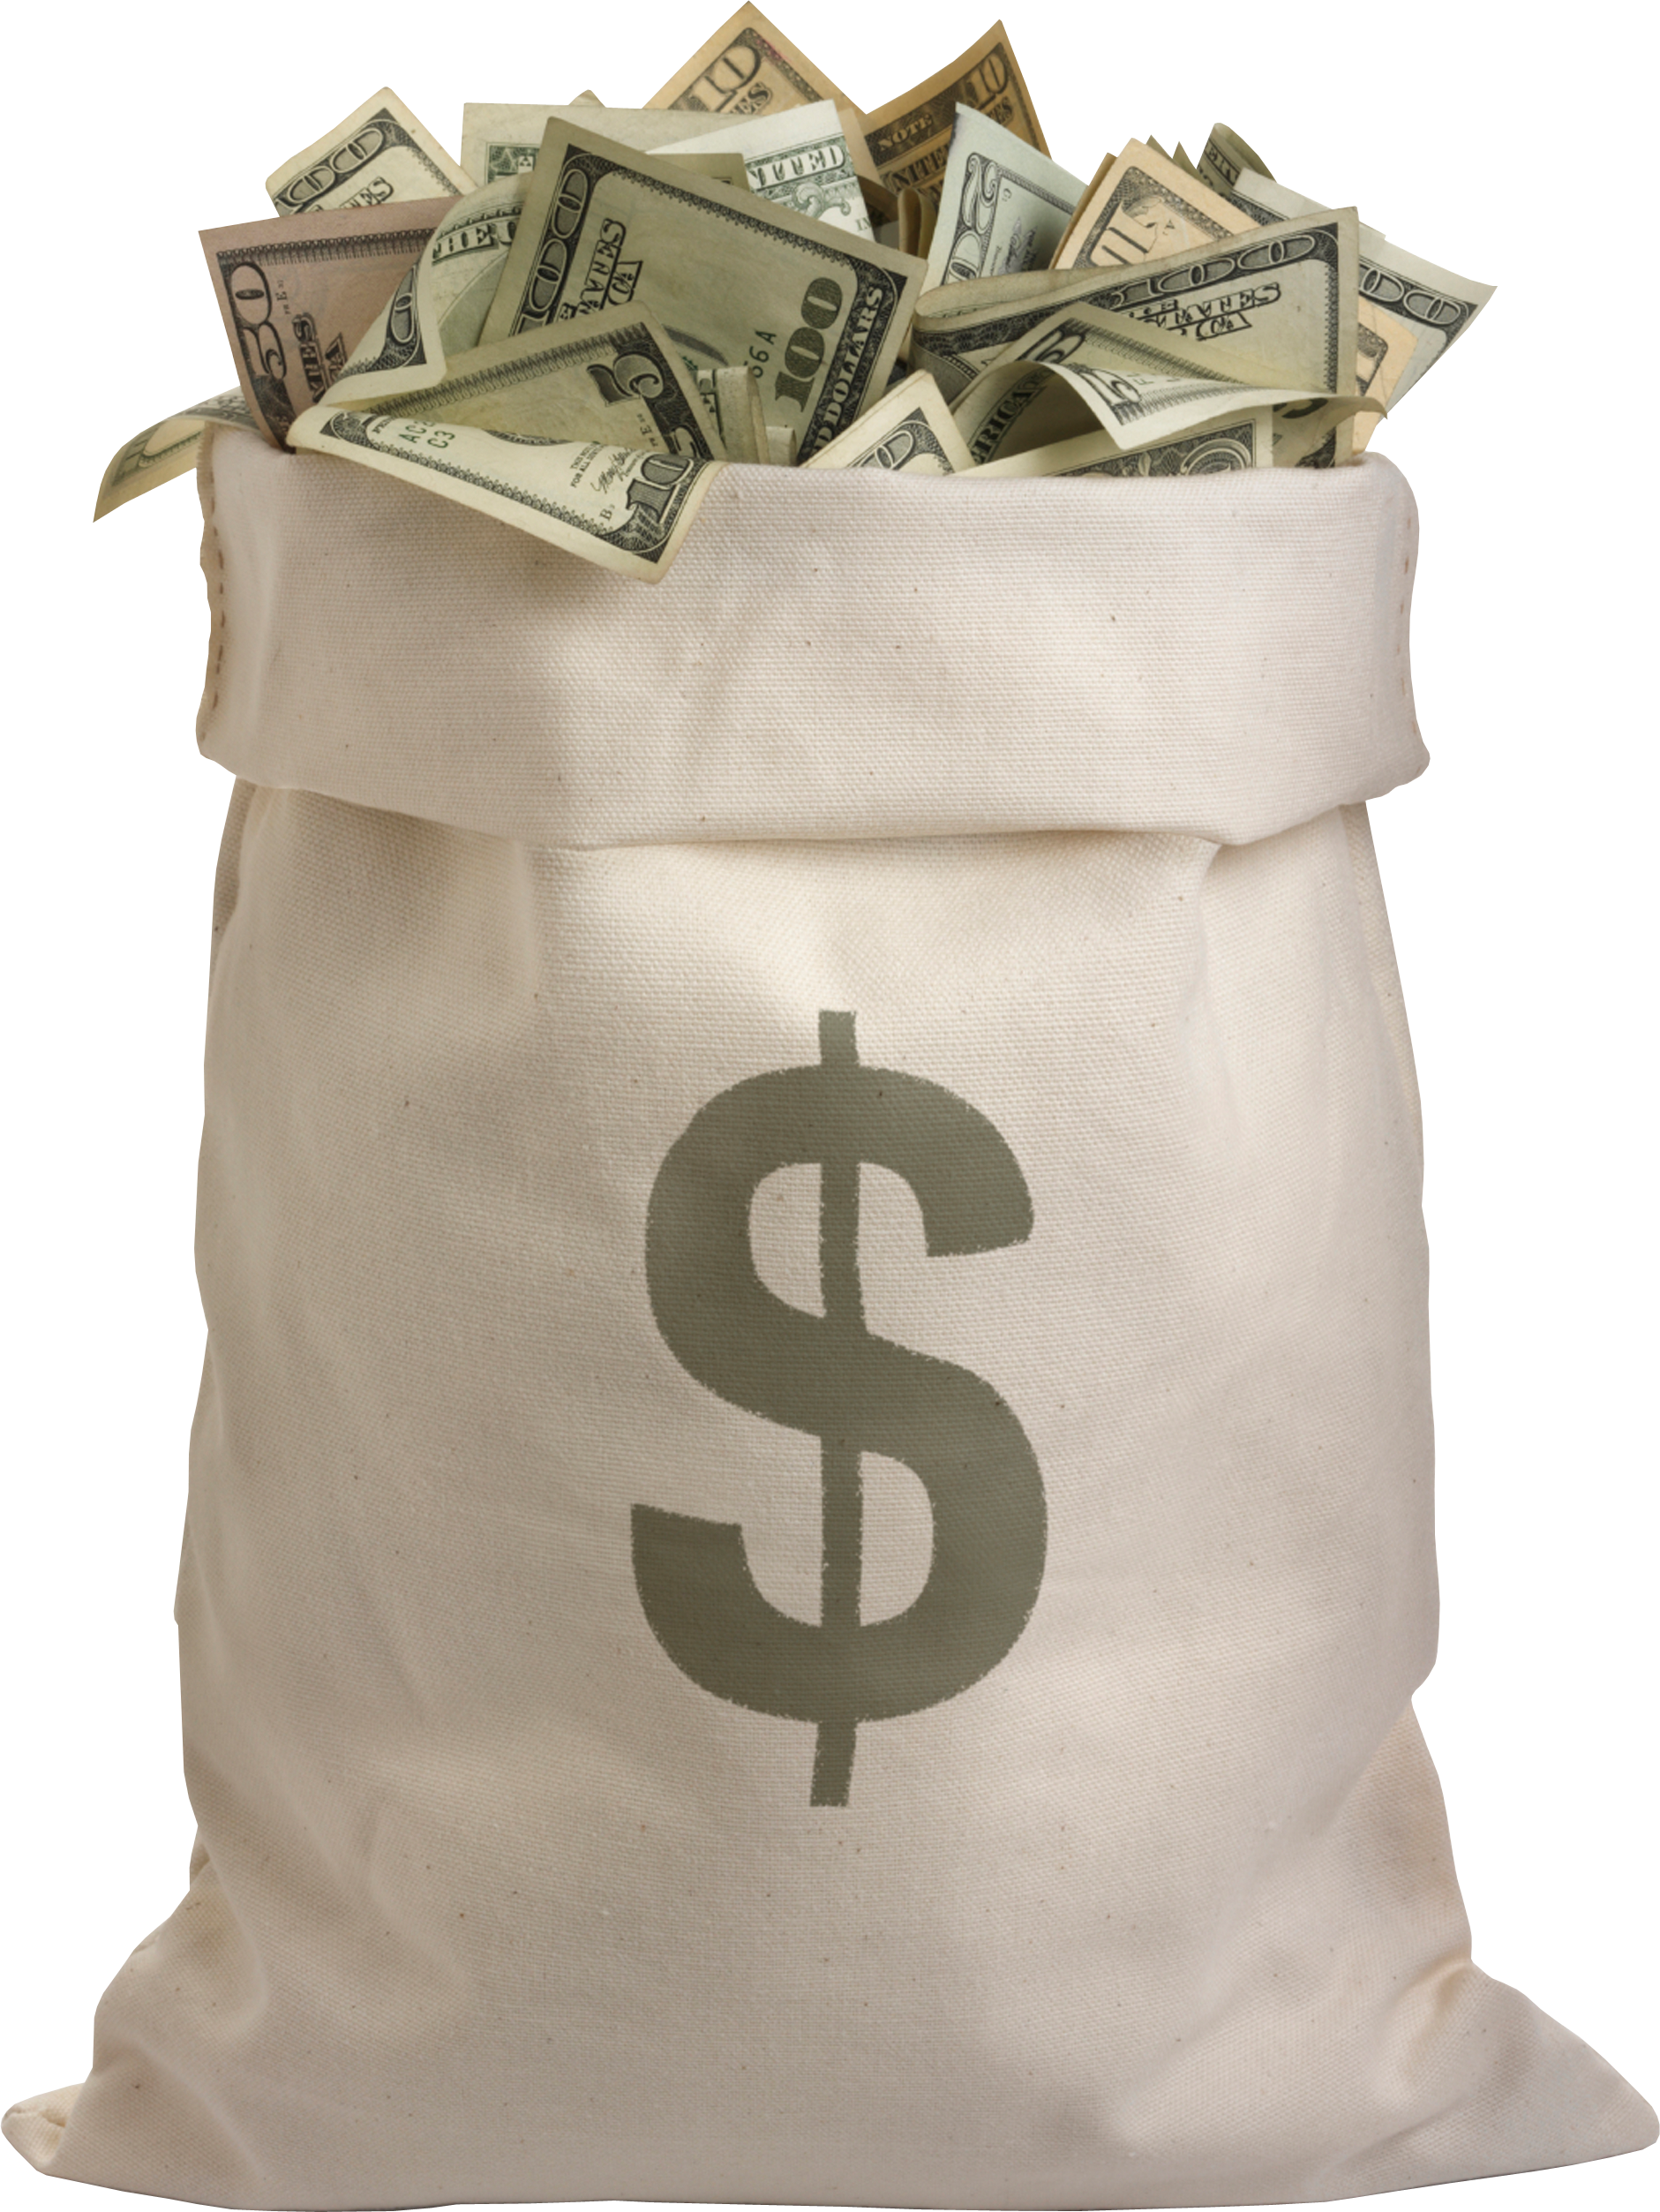 Money in hand clipart transparent image library library Money PNG image, free money pictures download image library library